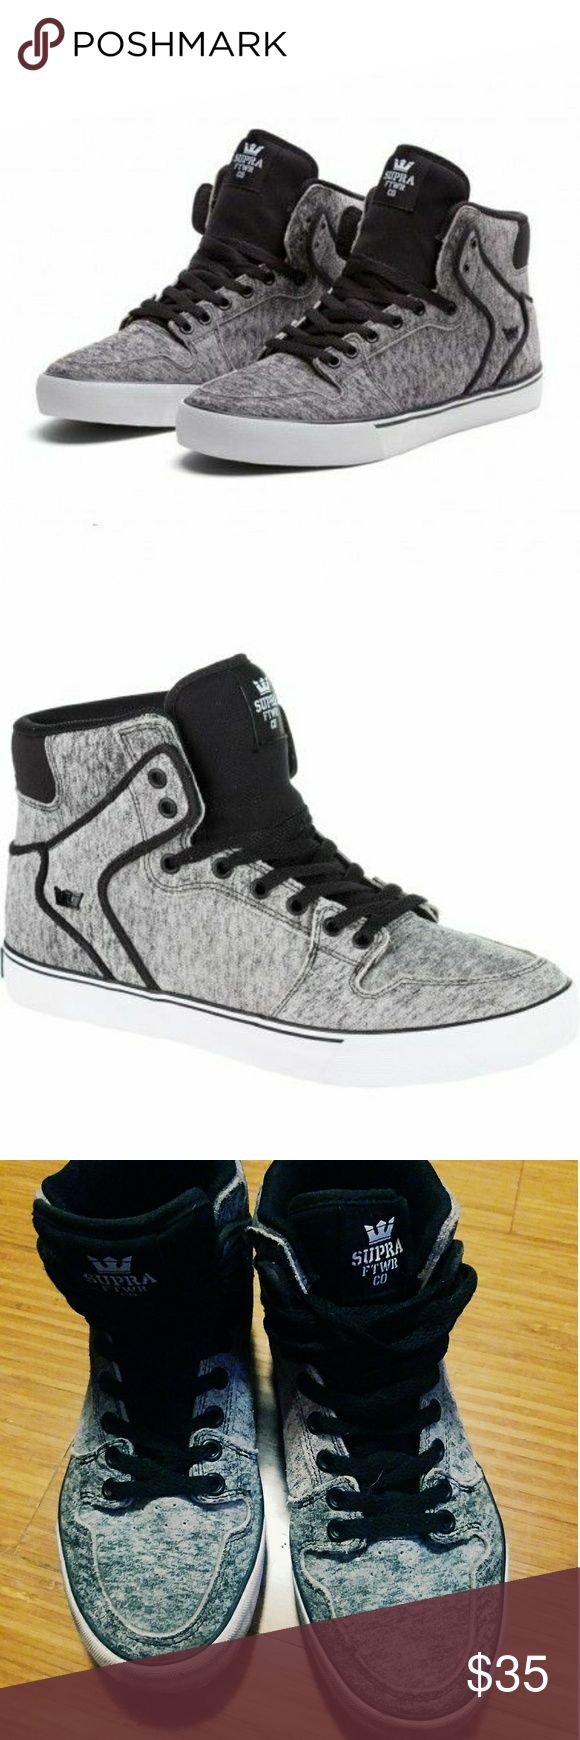 Men's Supra Hightops Slightly used but in great condition pair of hightop supras for women size 7 or mens size 5.5 Supra Shoes